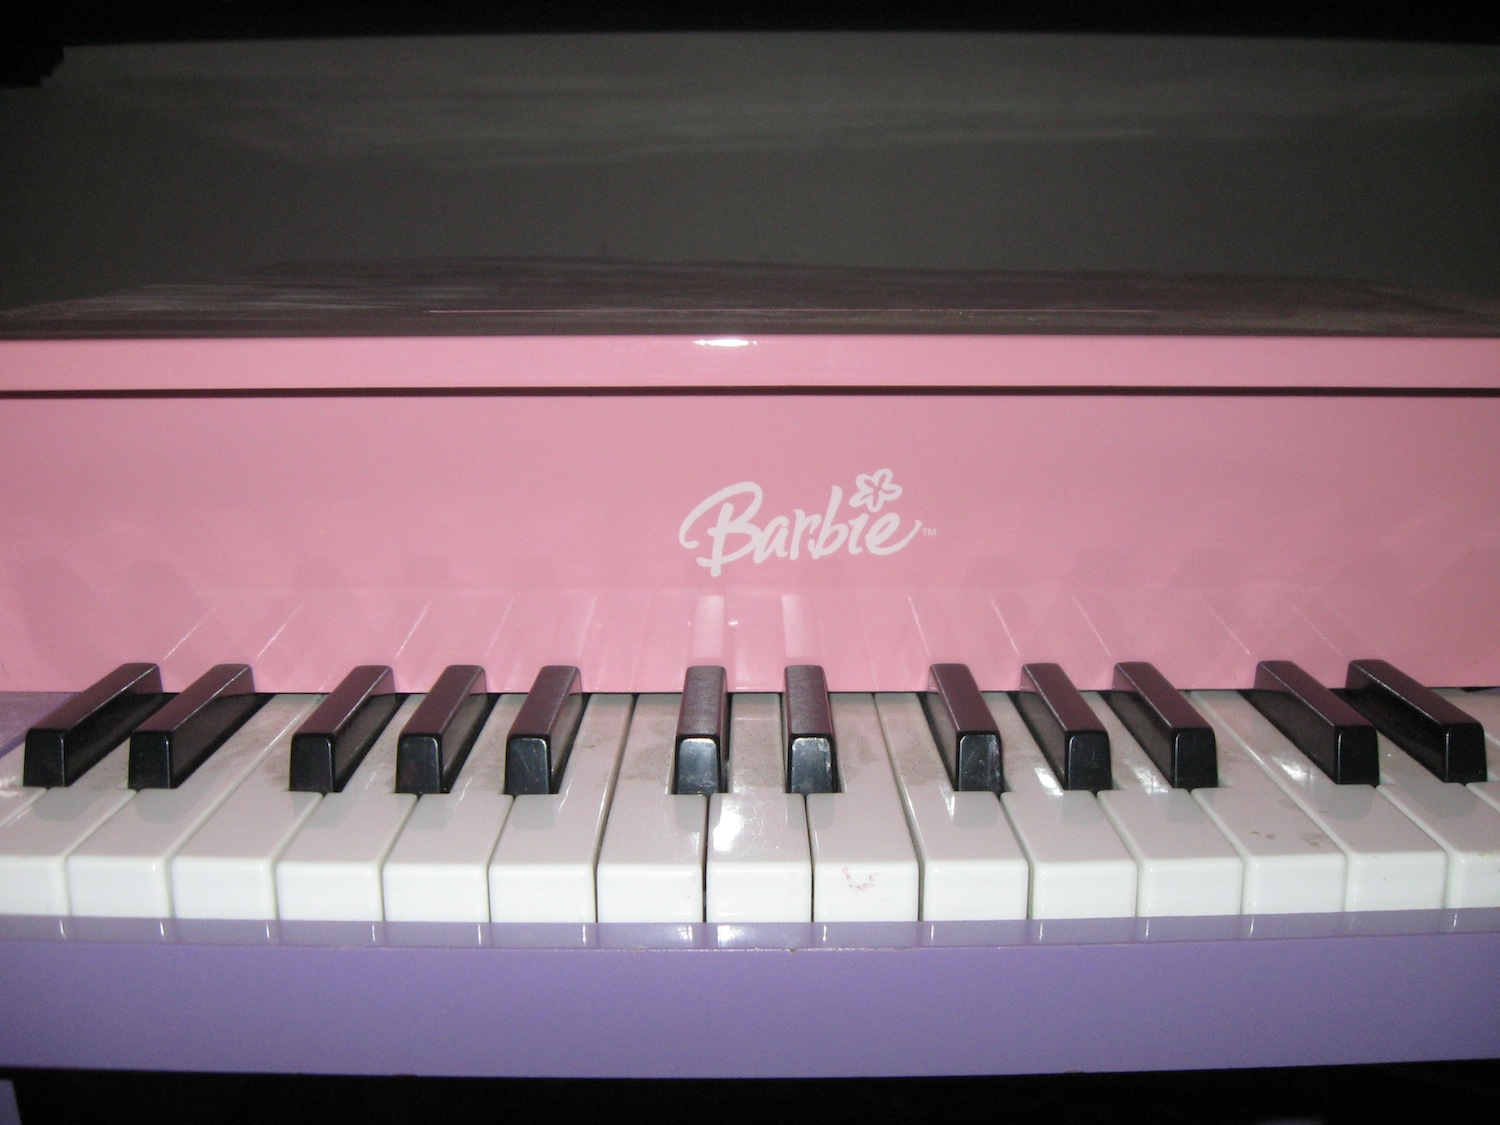 barbie-piano